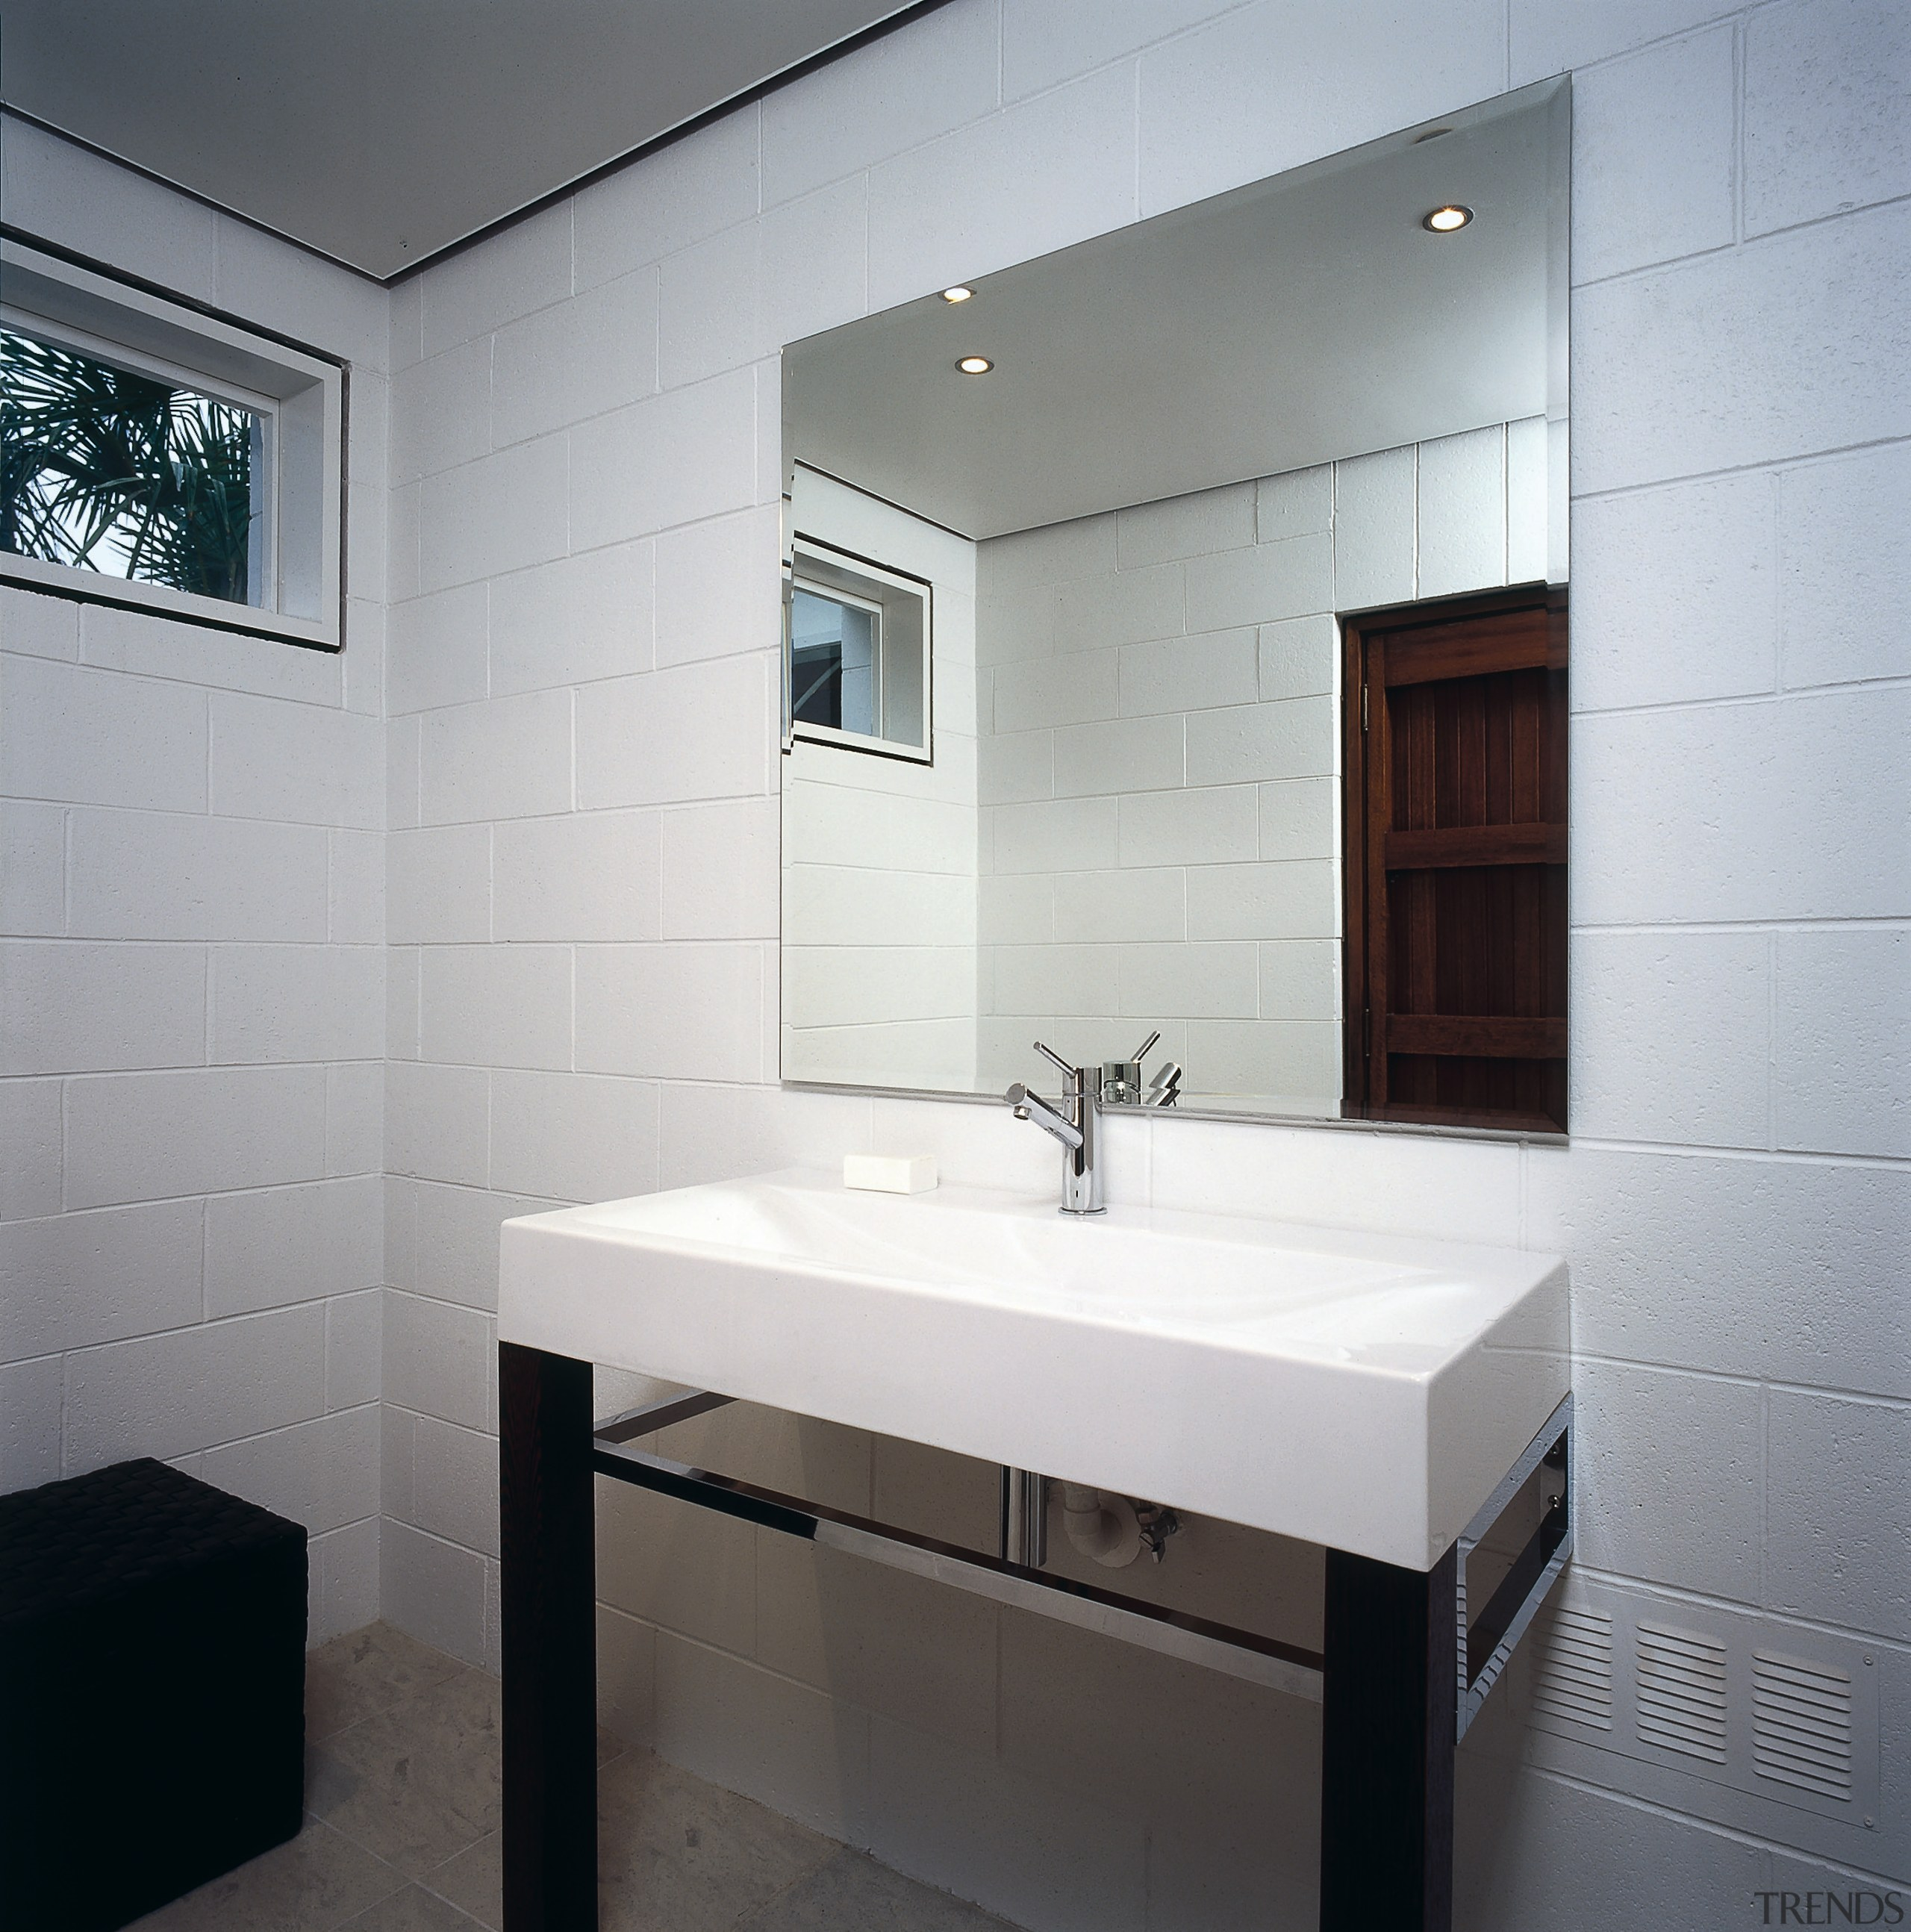 The guest bathroom of a home, showing the architecture, bathroom, bathroom accessory, floor, flooring, interior design, room, sink, tap, tile, wall, gray